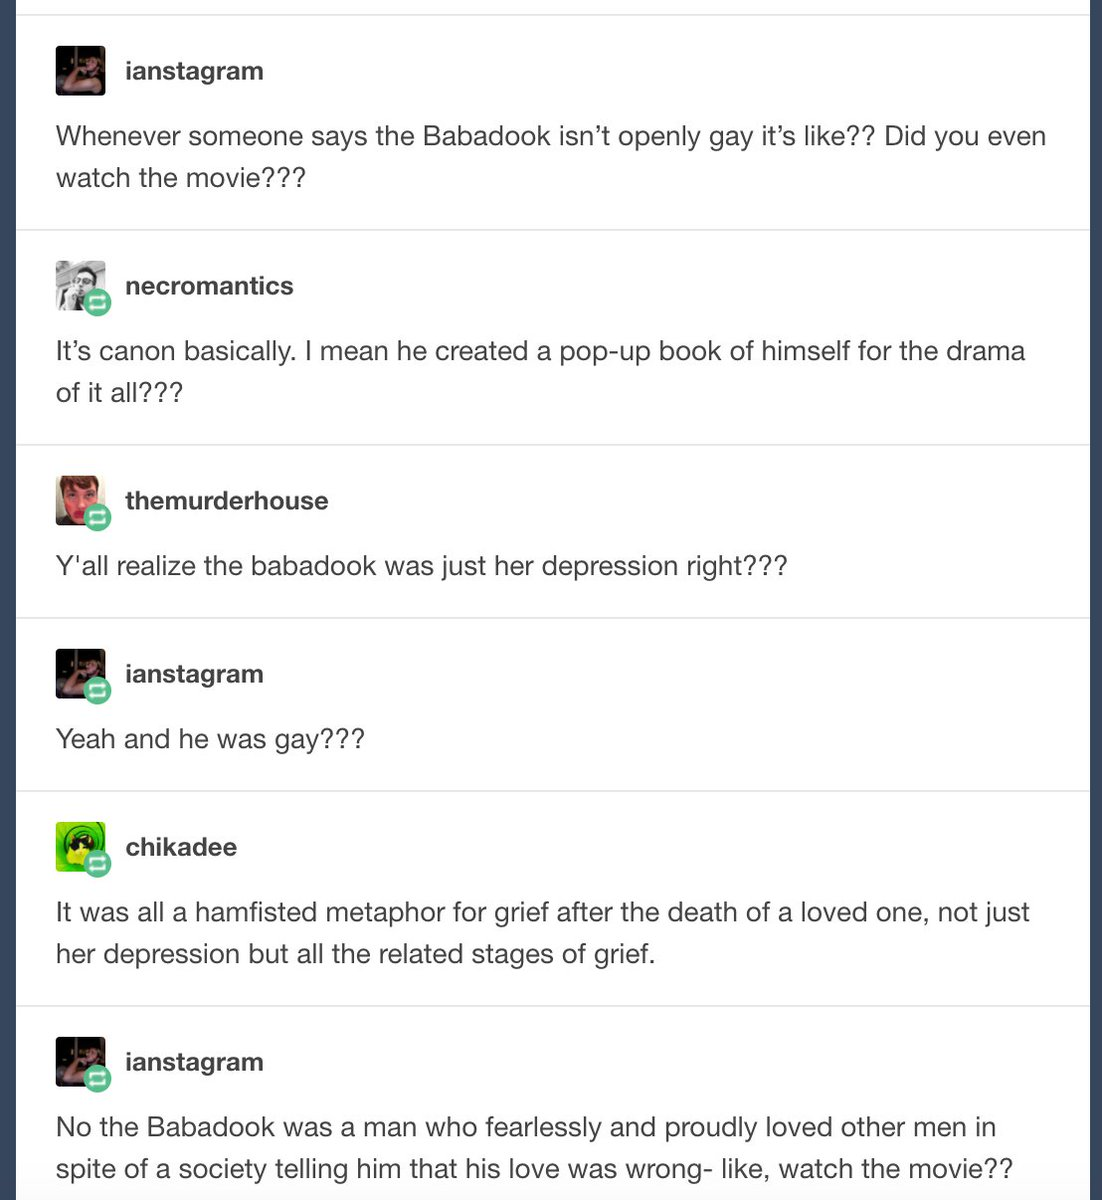 My new favorite tumblr meme is insisting that the babadook is gaypic twitter com id1pjpkkgx